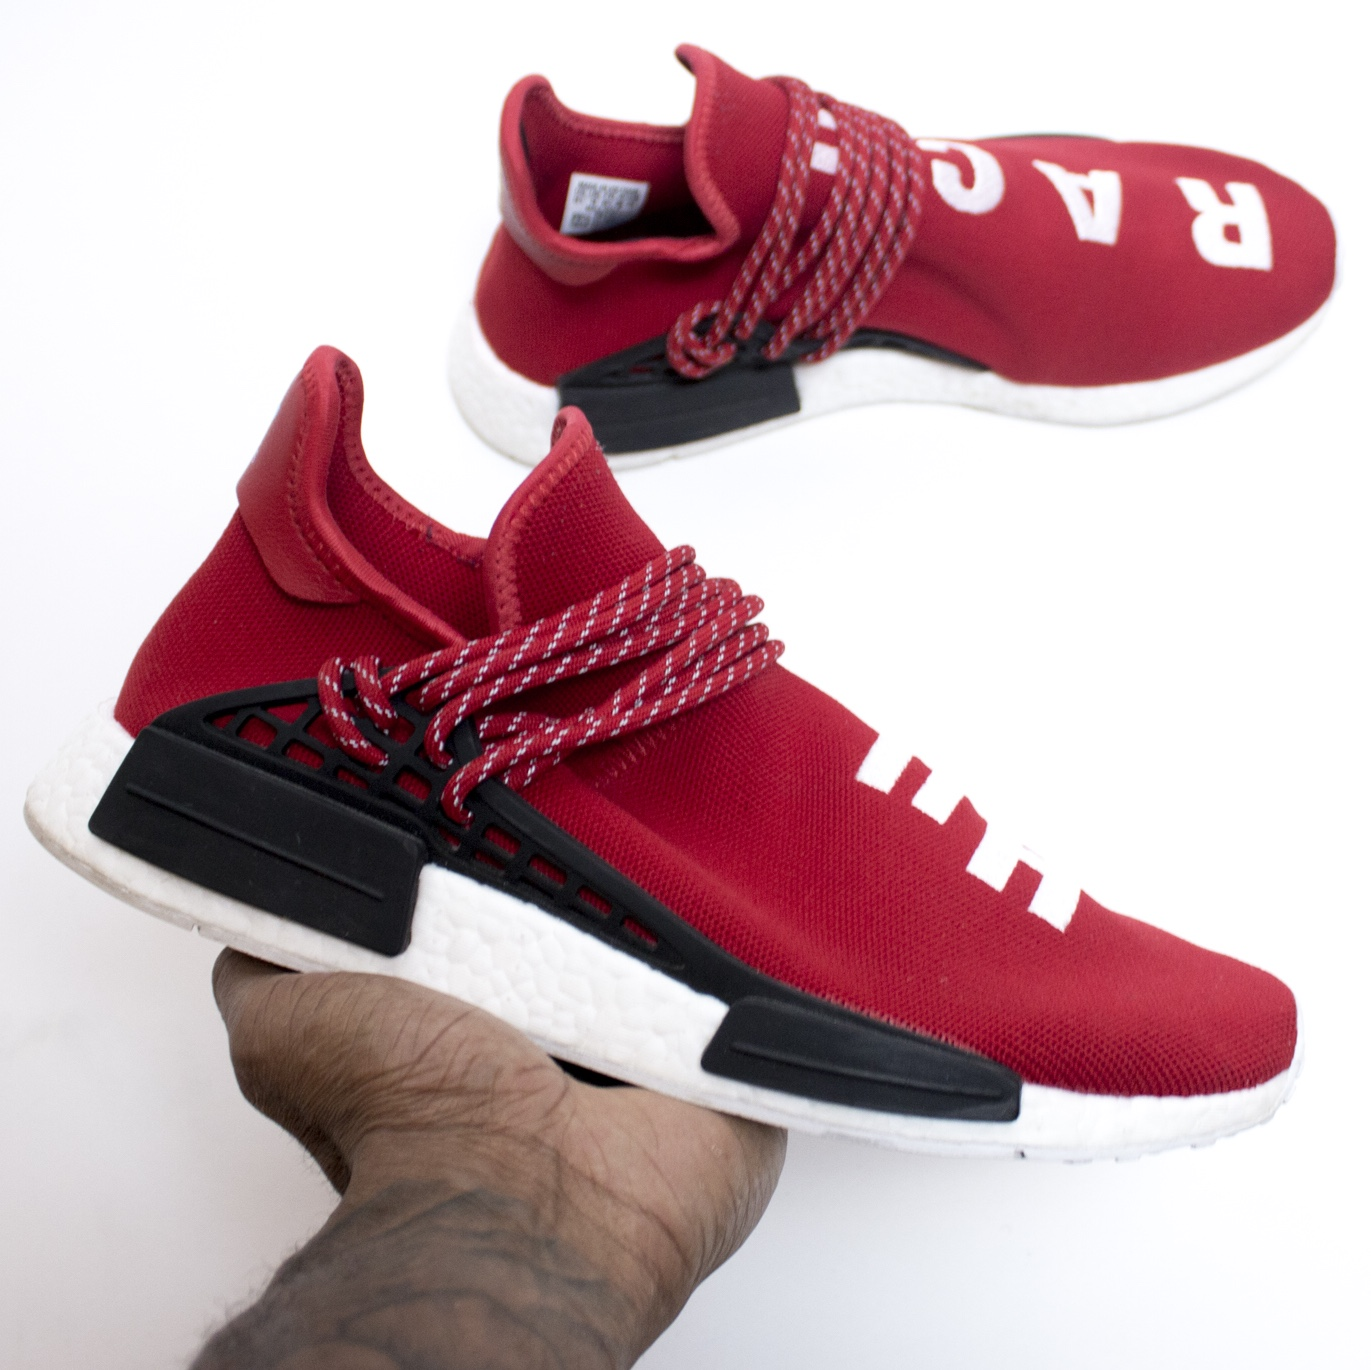 designer fashion 60d3c 4ddf4 Adidas Pharrell NMD human race RED UK10 condition ...